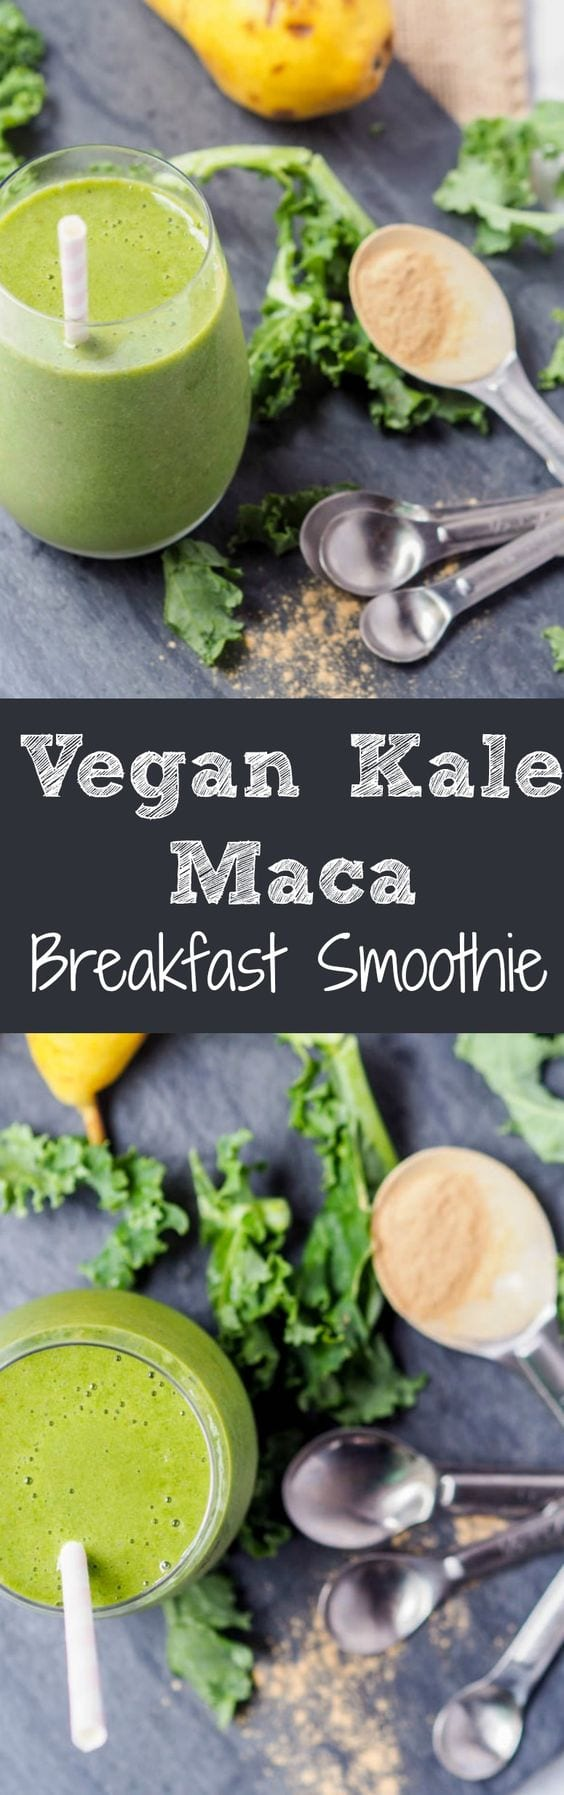 Super simple 5 minute 4 ingredient superfood kale smoothie with added vitamins and nutrients from the Peruvian superfood maca, banana, and pear. This breakfast smoothie is packed full of fiber, vitamins A and C #superfood #smoothie #vegan #breakfast #healthy